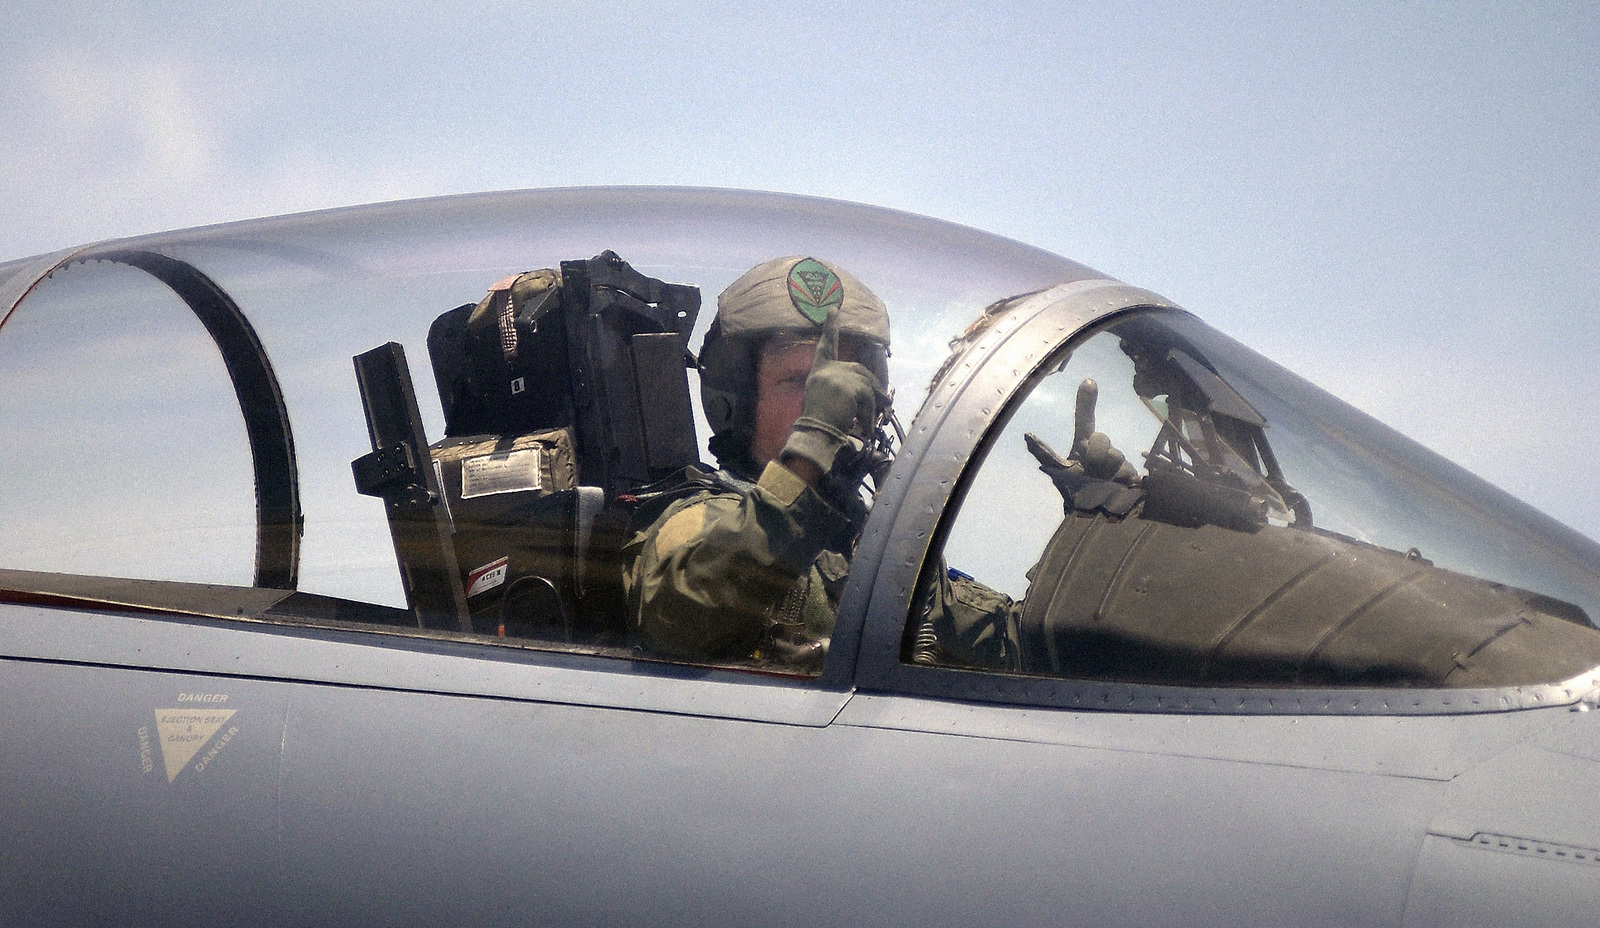 An unidentified US Air Force (USAF) F-15 Eagle aircraft pilot assigned to the 131st Fighter Wing (FW), Missouri (MO) Air National Guard (ANG), signals from the cockpit of his aircraft before takeoff for the Combat Search and Rescue (CSAR) training exercise DESERT RESCUE X, at Lambert International Airport (IAP), St. Louis, MO